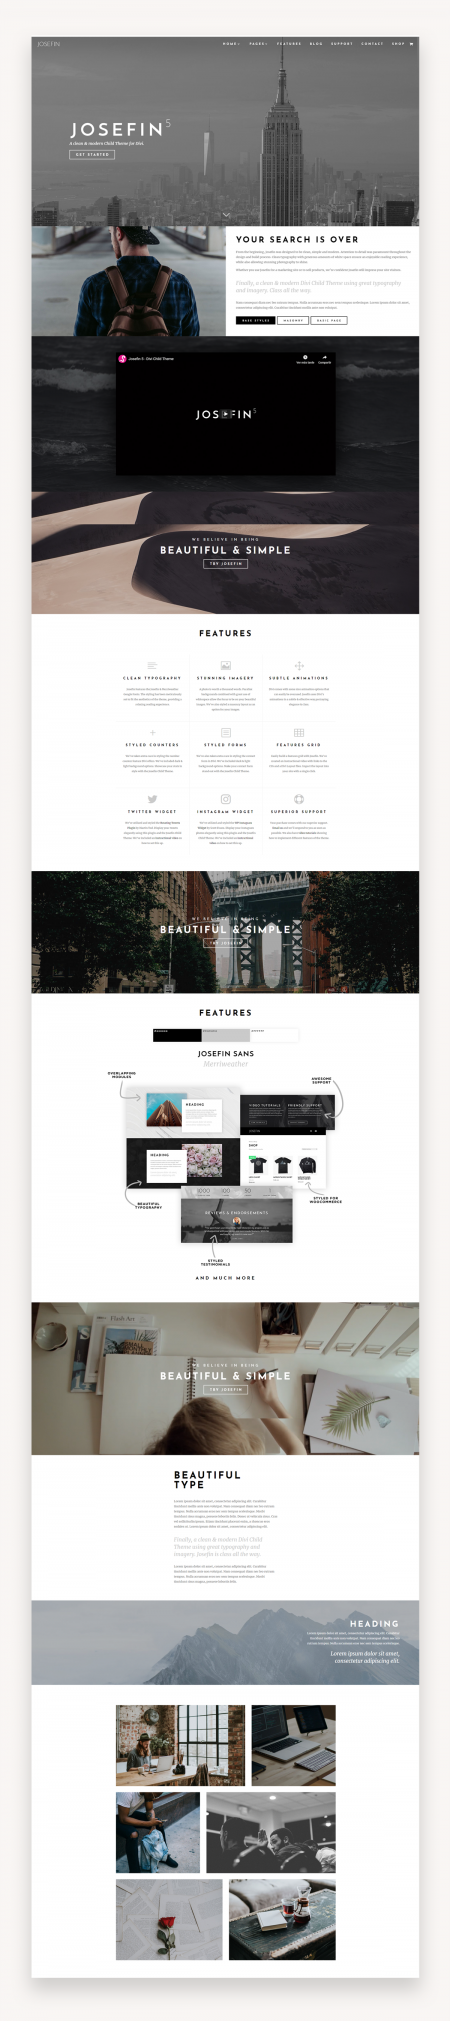 Josefin - Divi Child Theme